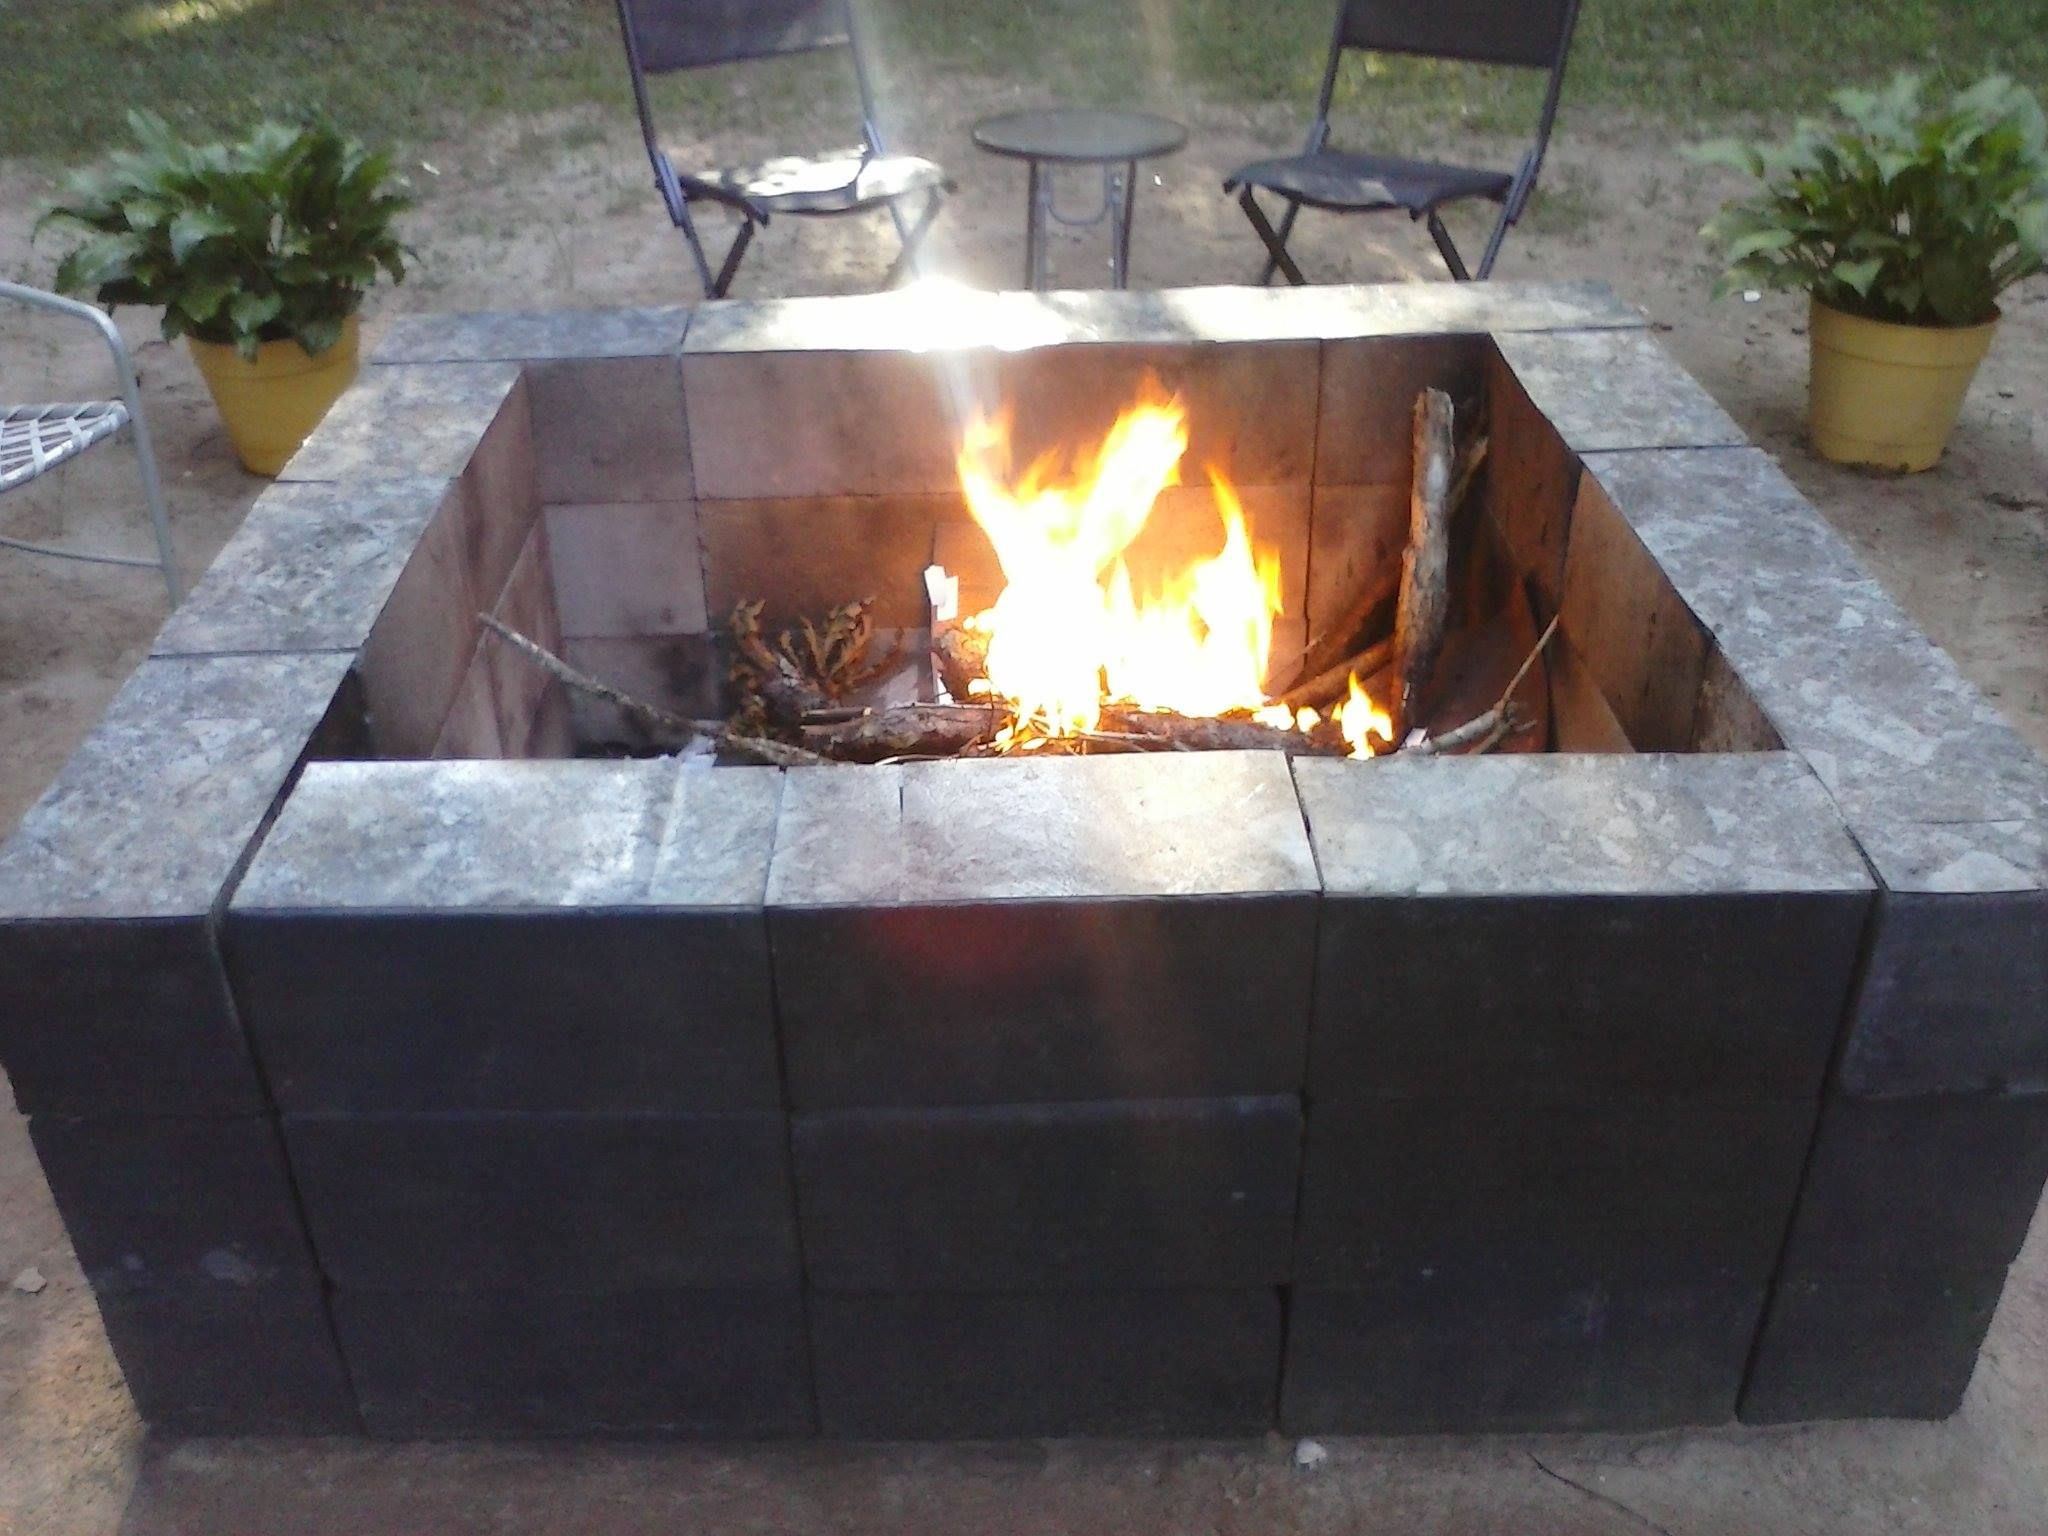 Cost Around 20 Made With Cinder Blocks Spray Paint And Laminate Fire Pit Outdoor Fire Pit Fire Pit Paint